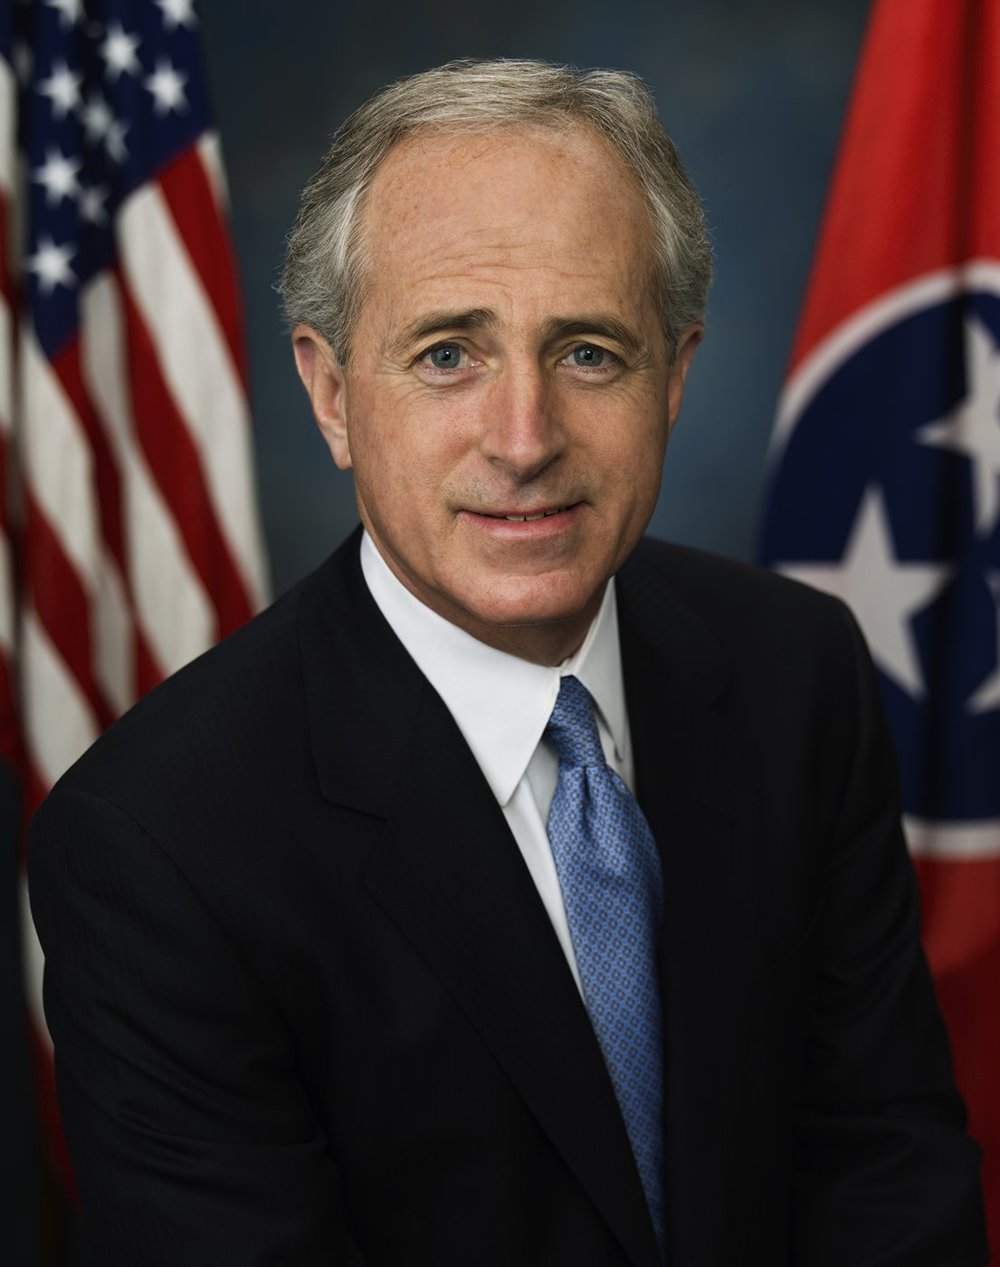 The chairman of the Senate Foreign Relations Committee Sen. Bob Corker (R-Tenn.). Credit: Wikimedia Commons.